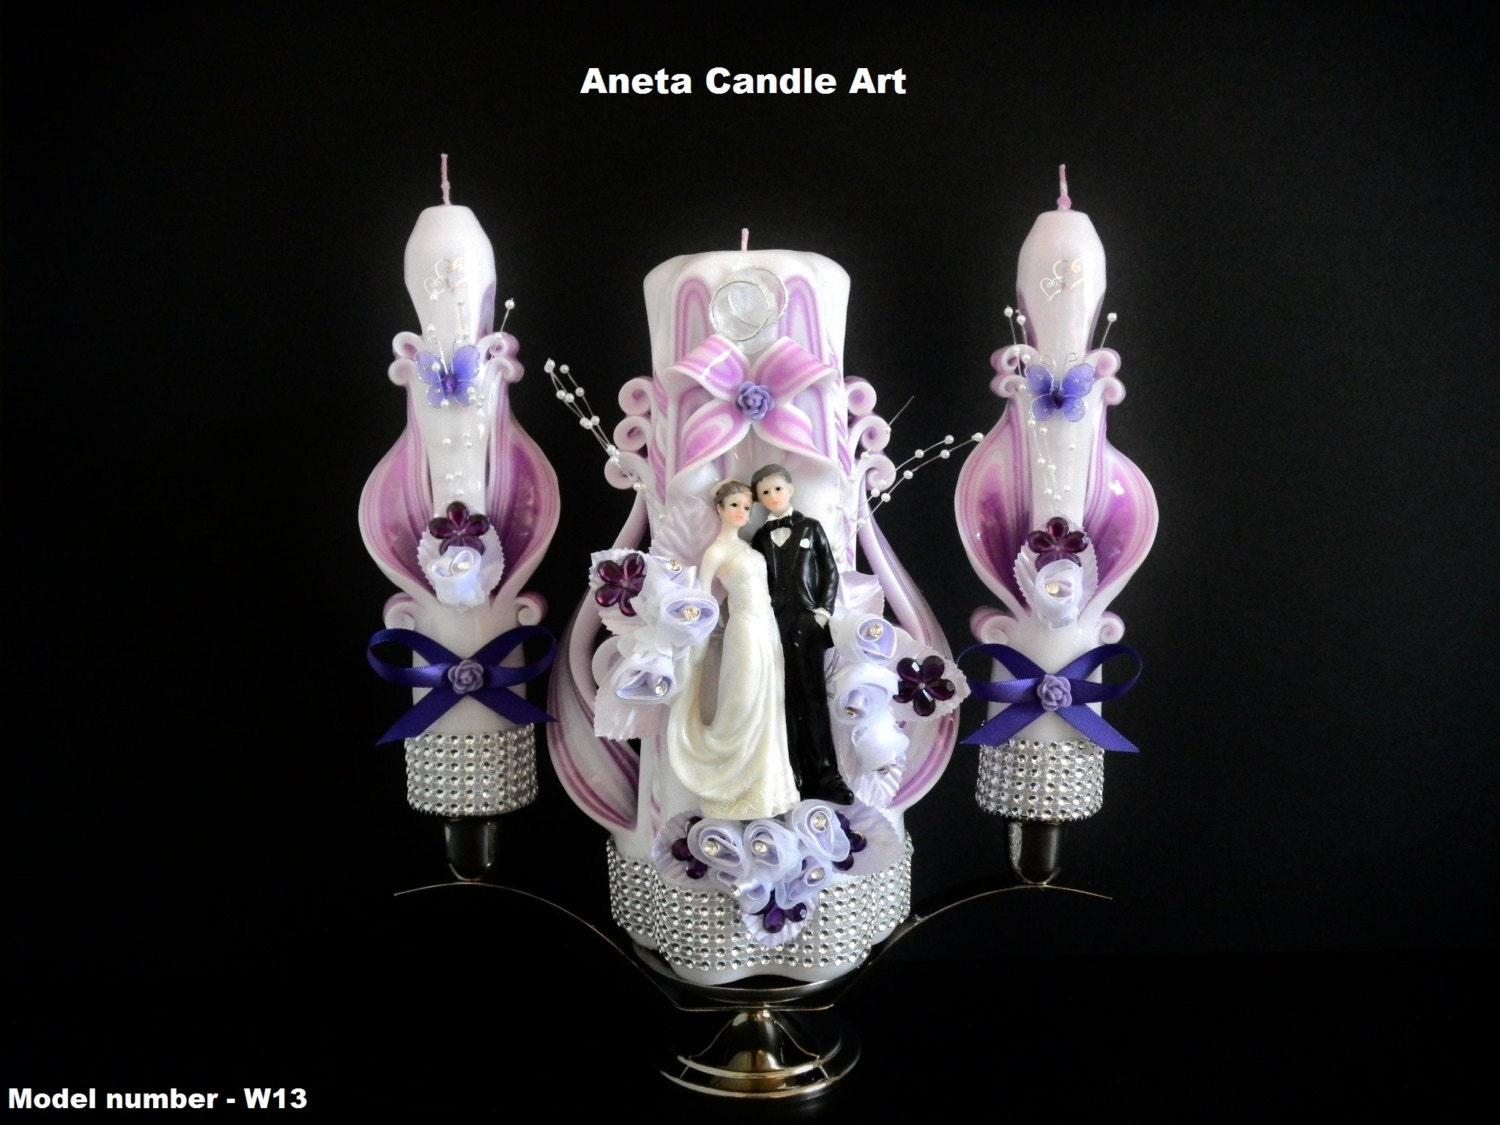 Wedding candle unity set carved candles by anetacandleart on etsy